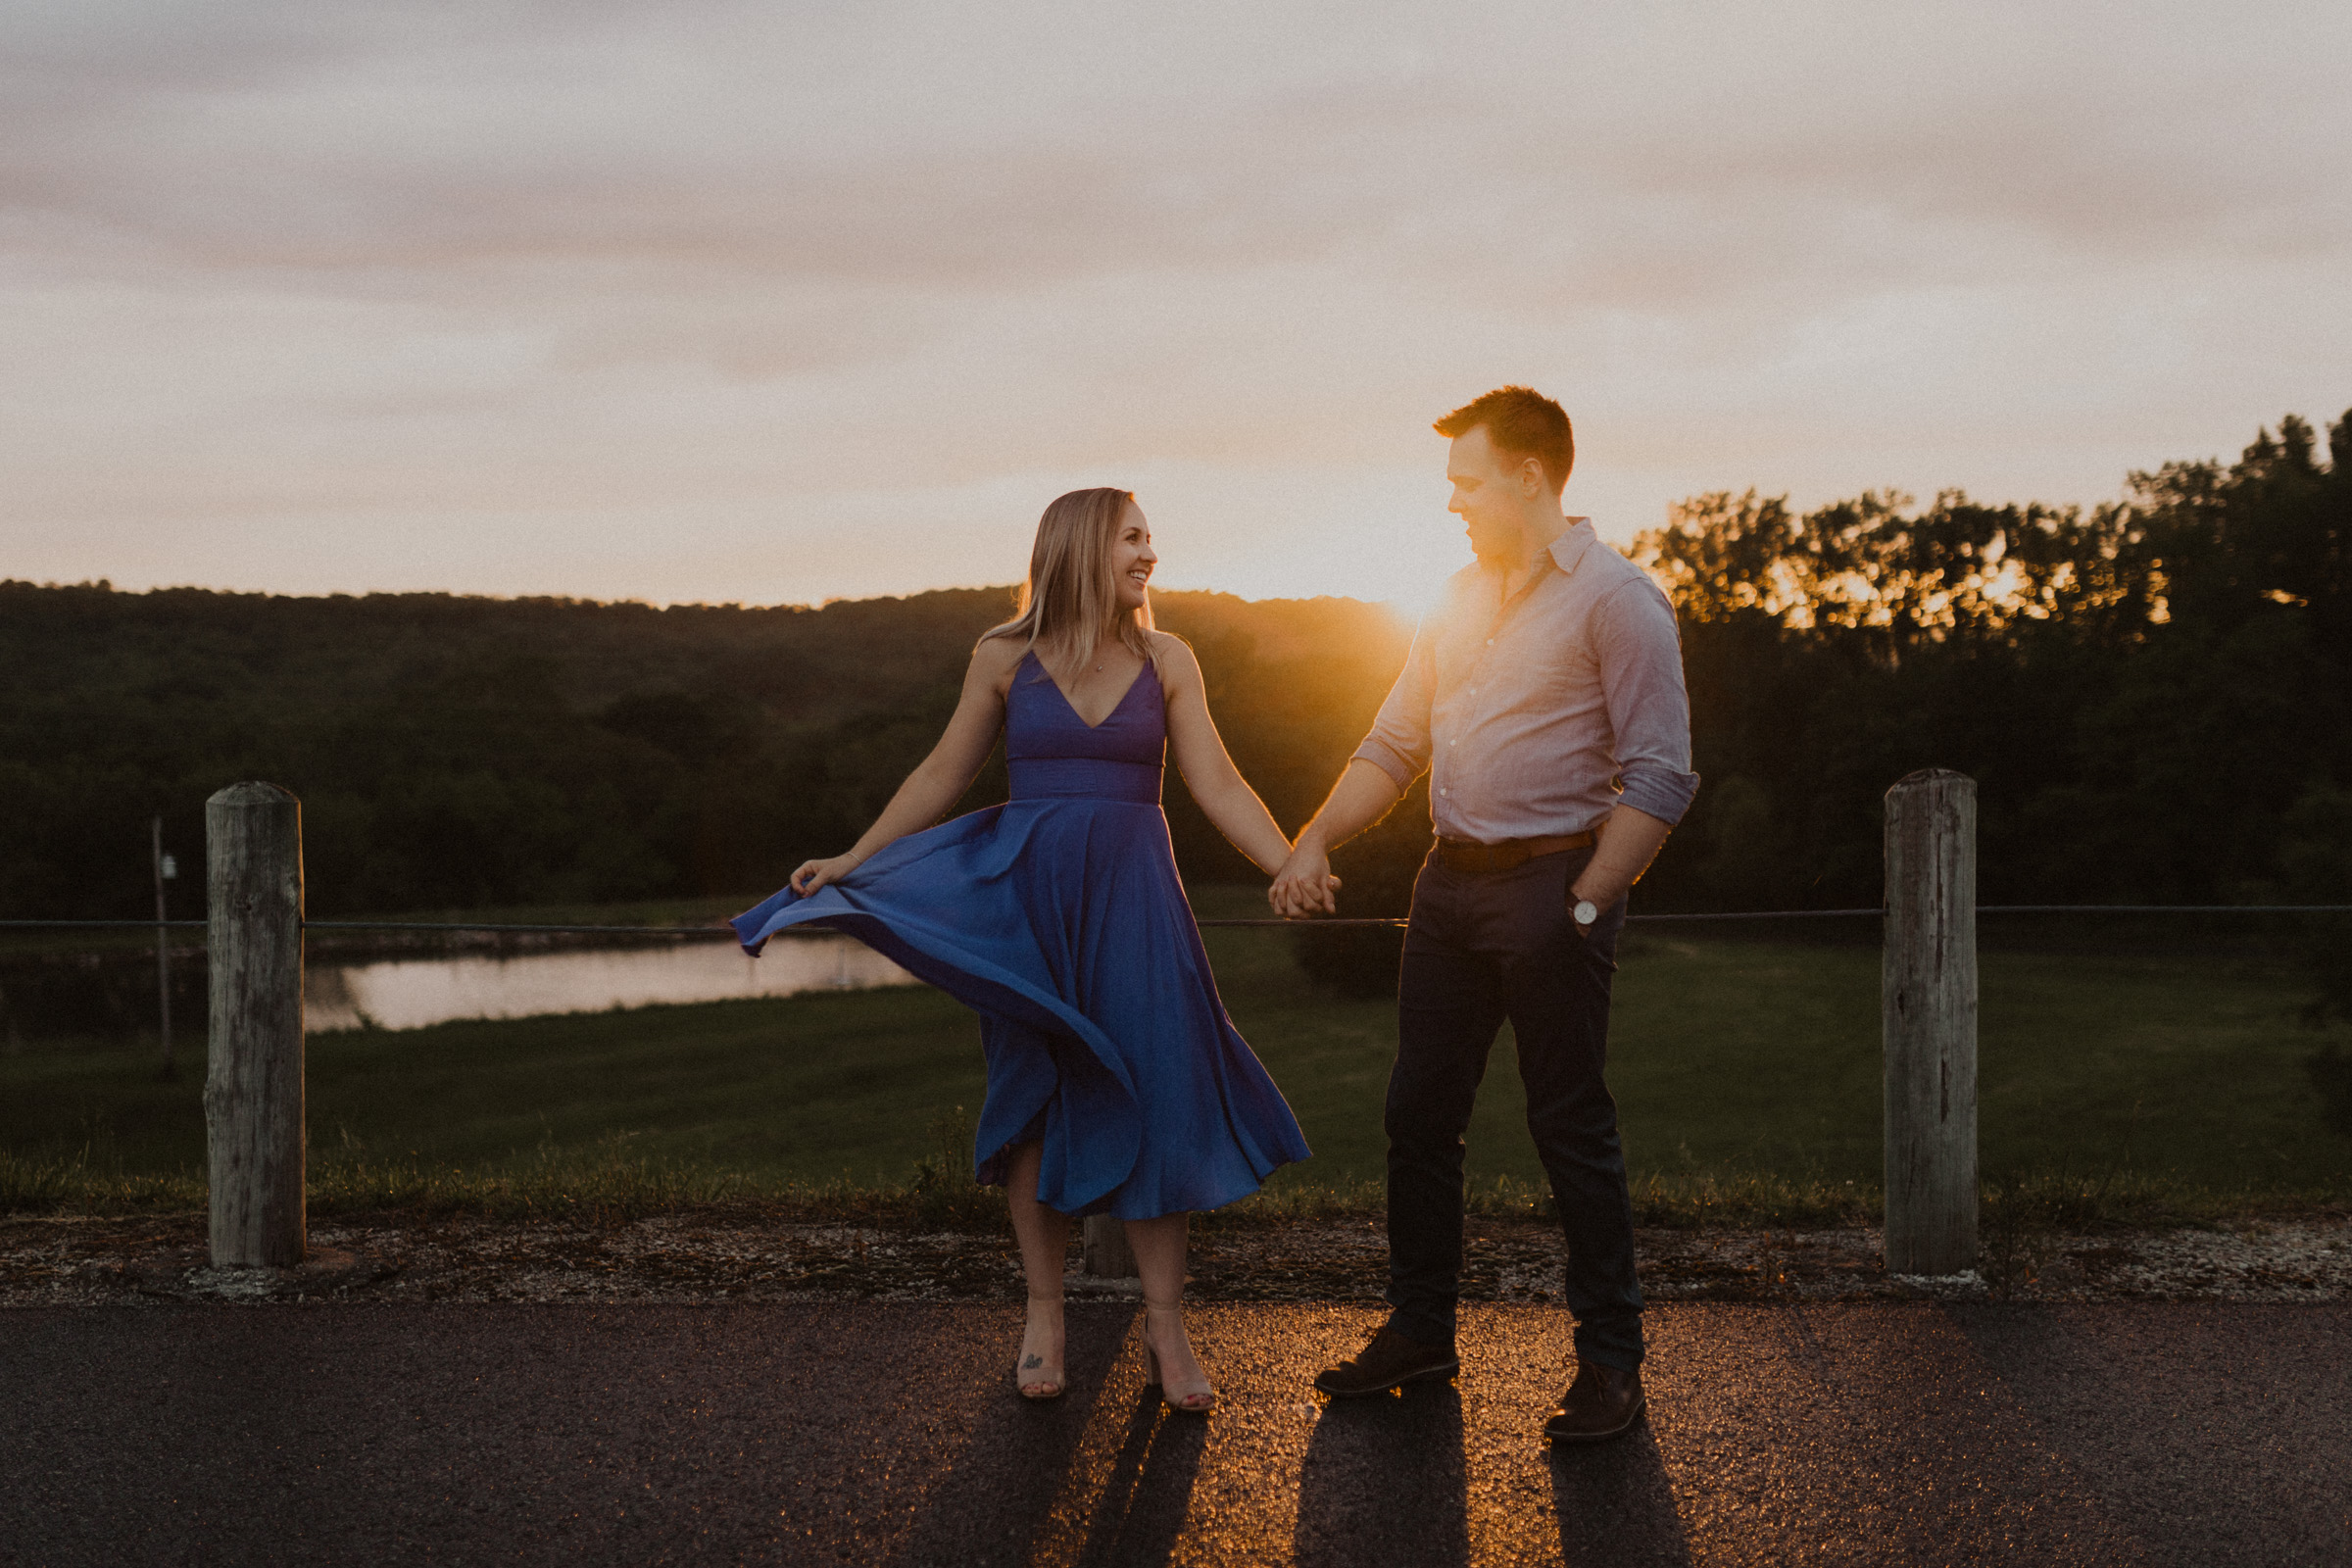 alyssa barletter photography shawnee mission park engagement session photographer sunset-19.jpg